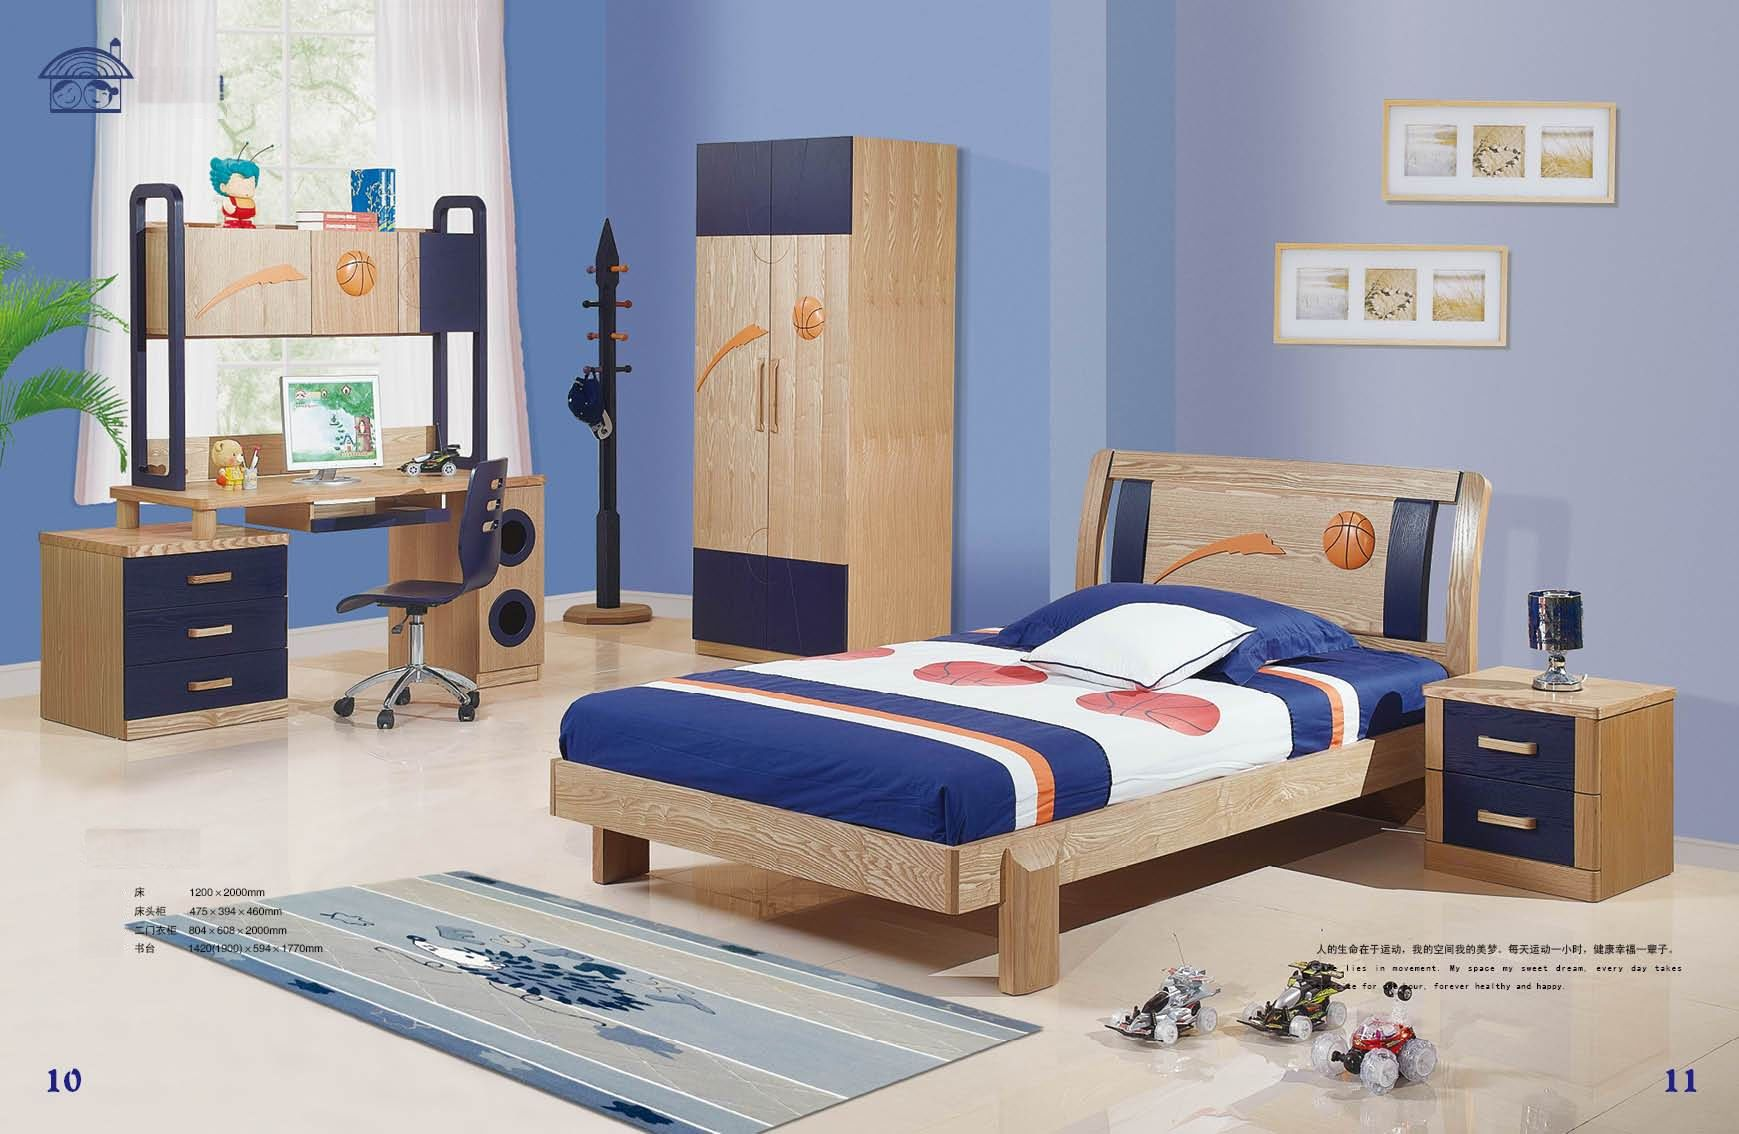 Kids bedroom ideas with kids bedroom furniture plus kids desk and